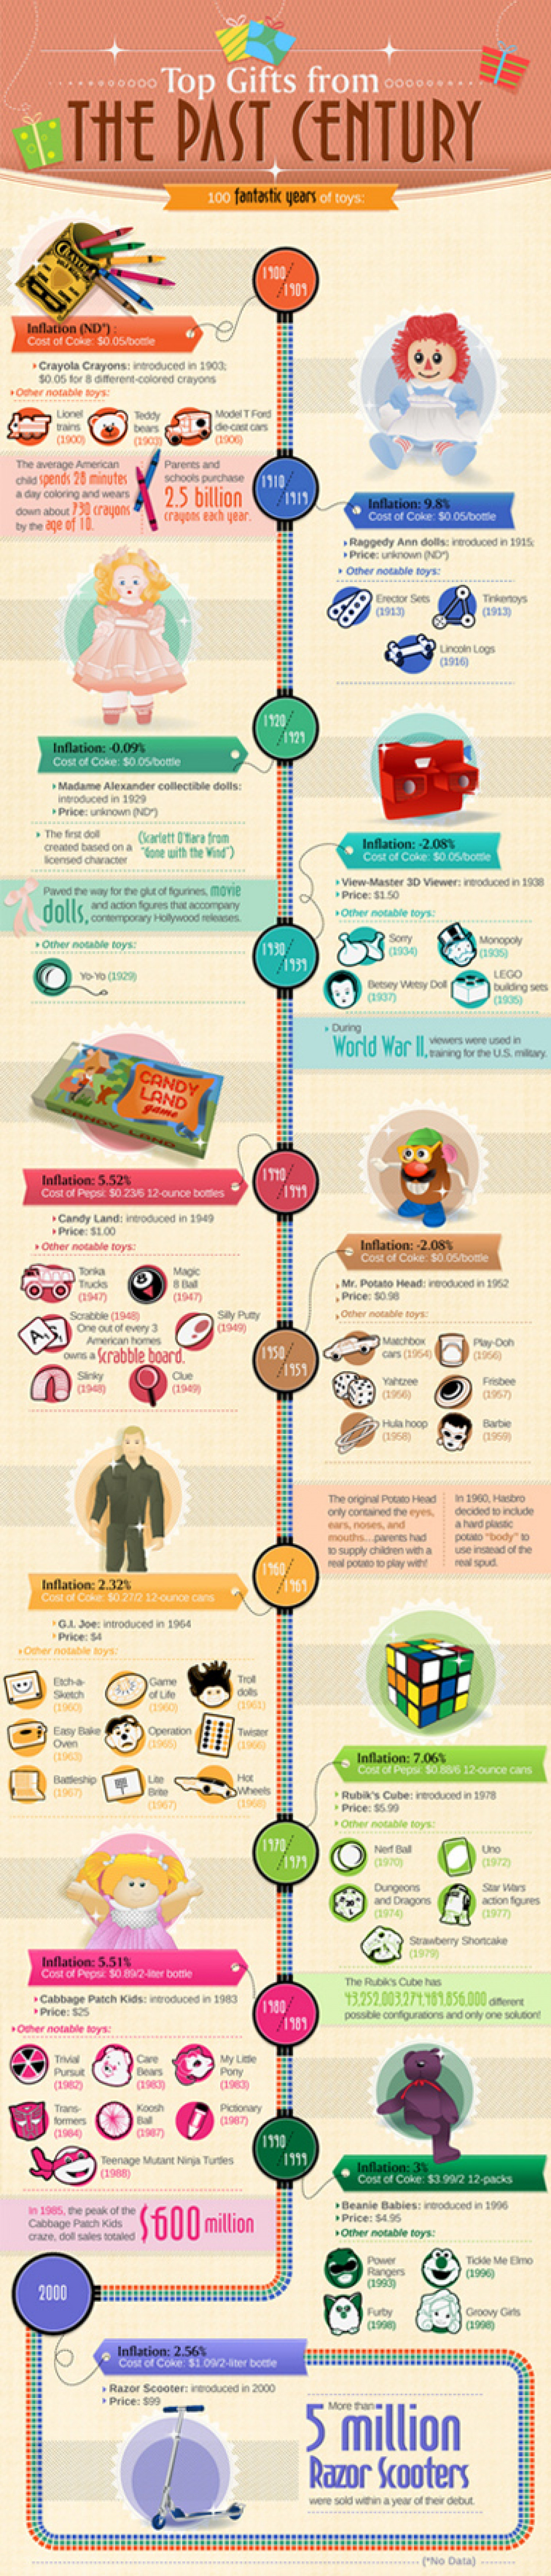 100 Years of Gift Giving Infographic